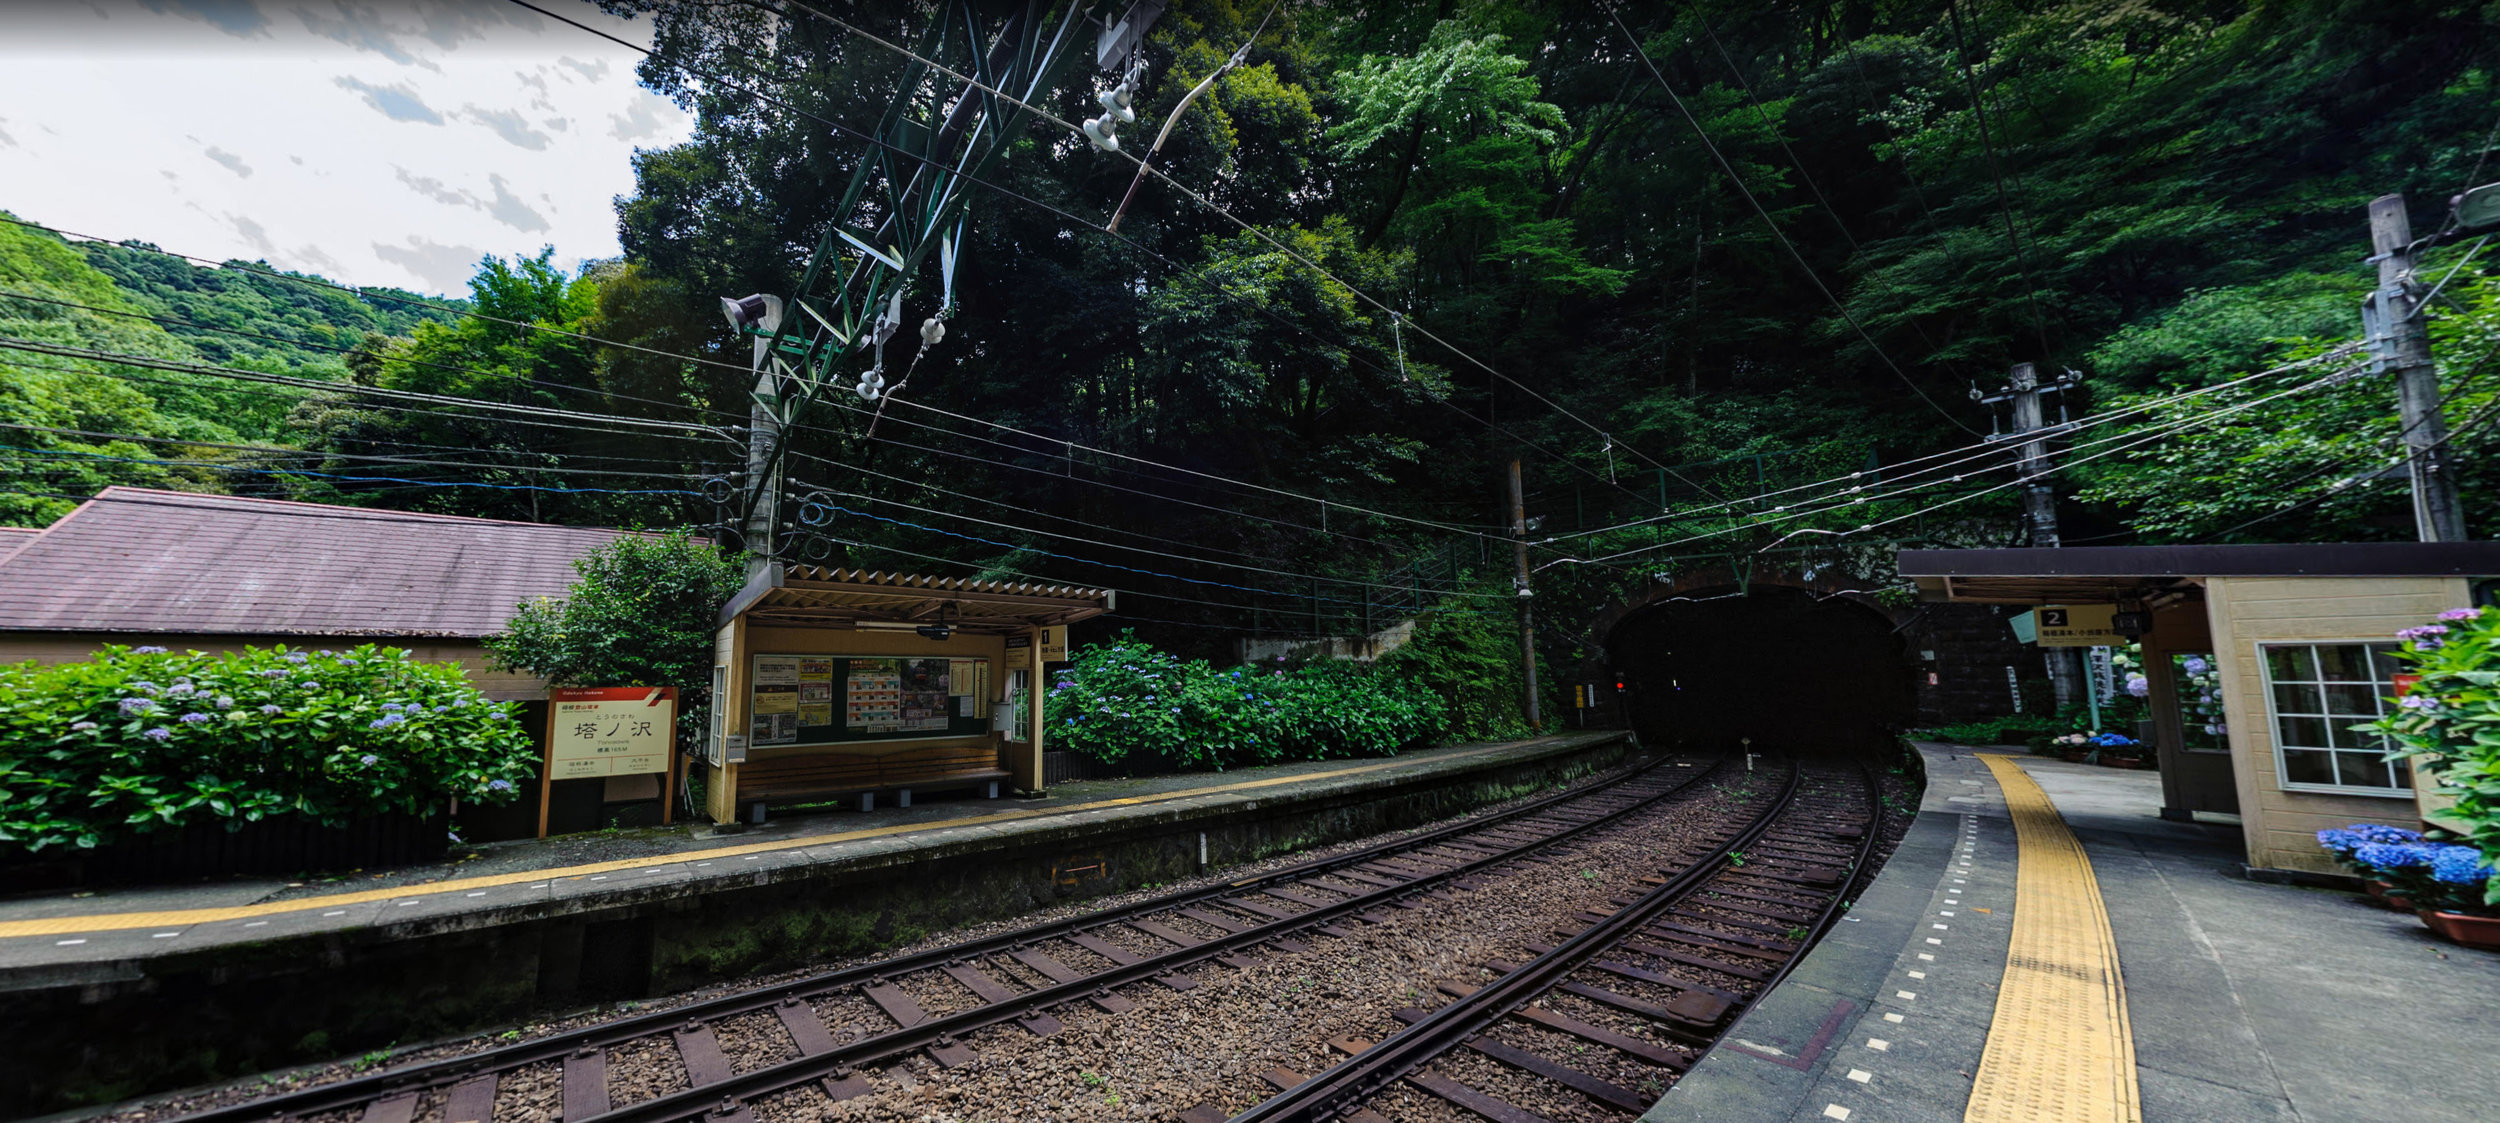 The actual Tonosawa Station. Its set in this incredible mountainside forest.